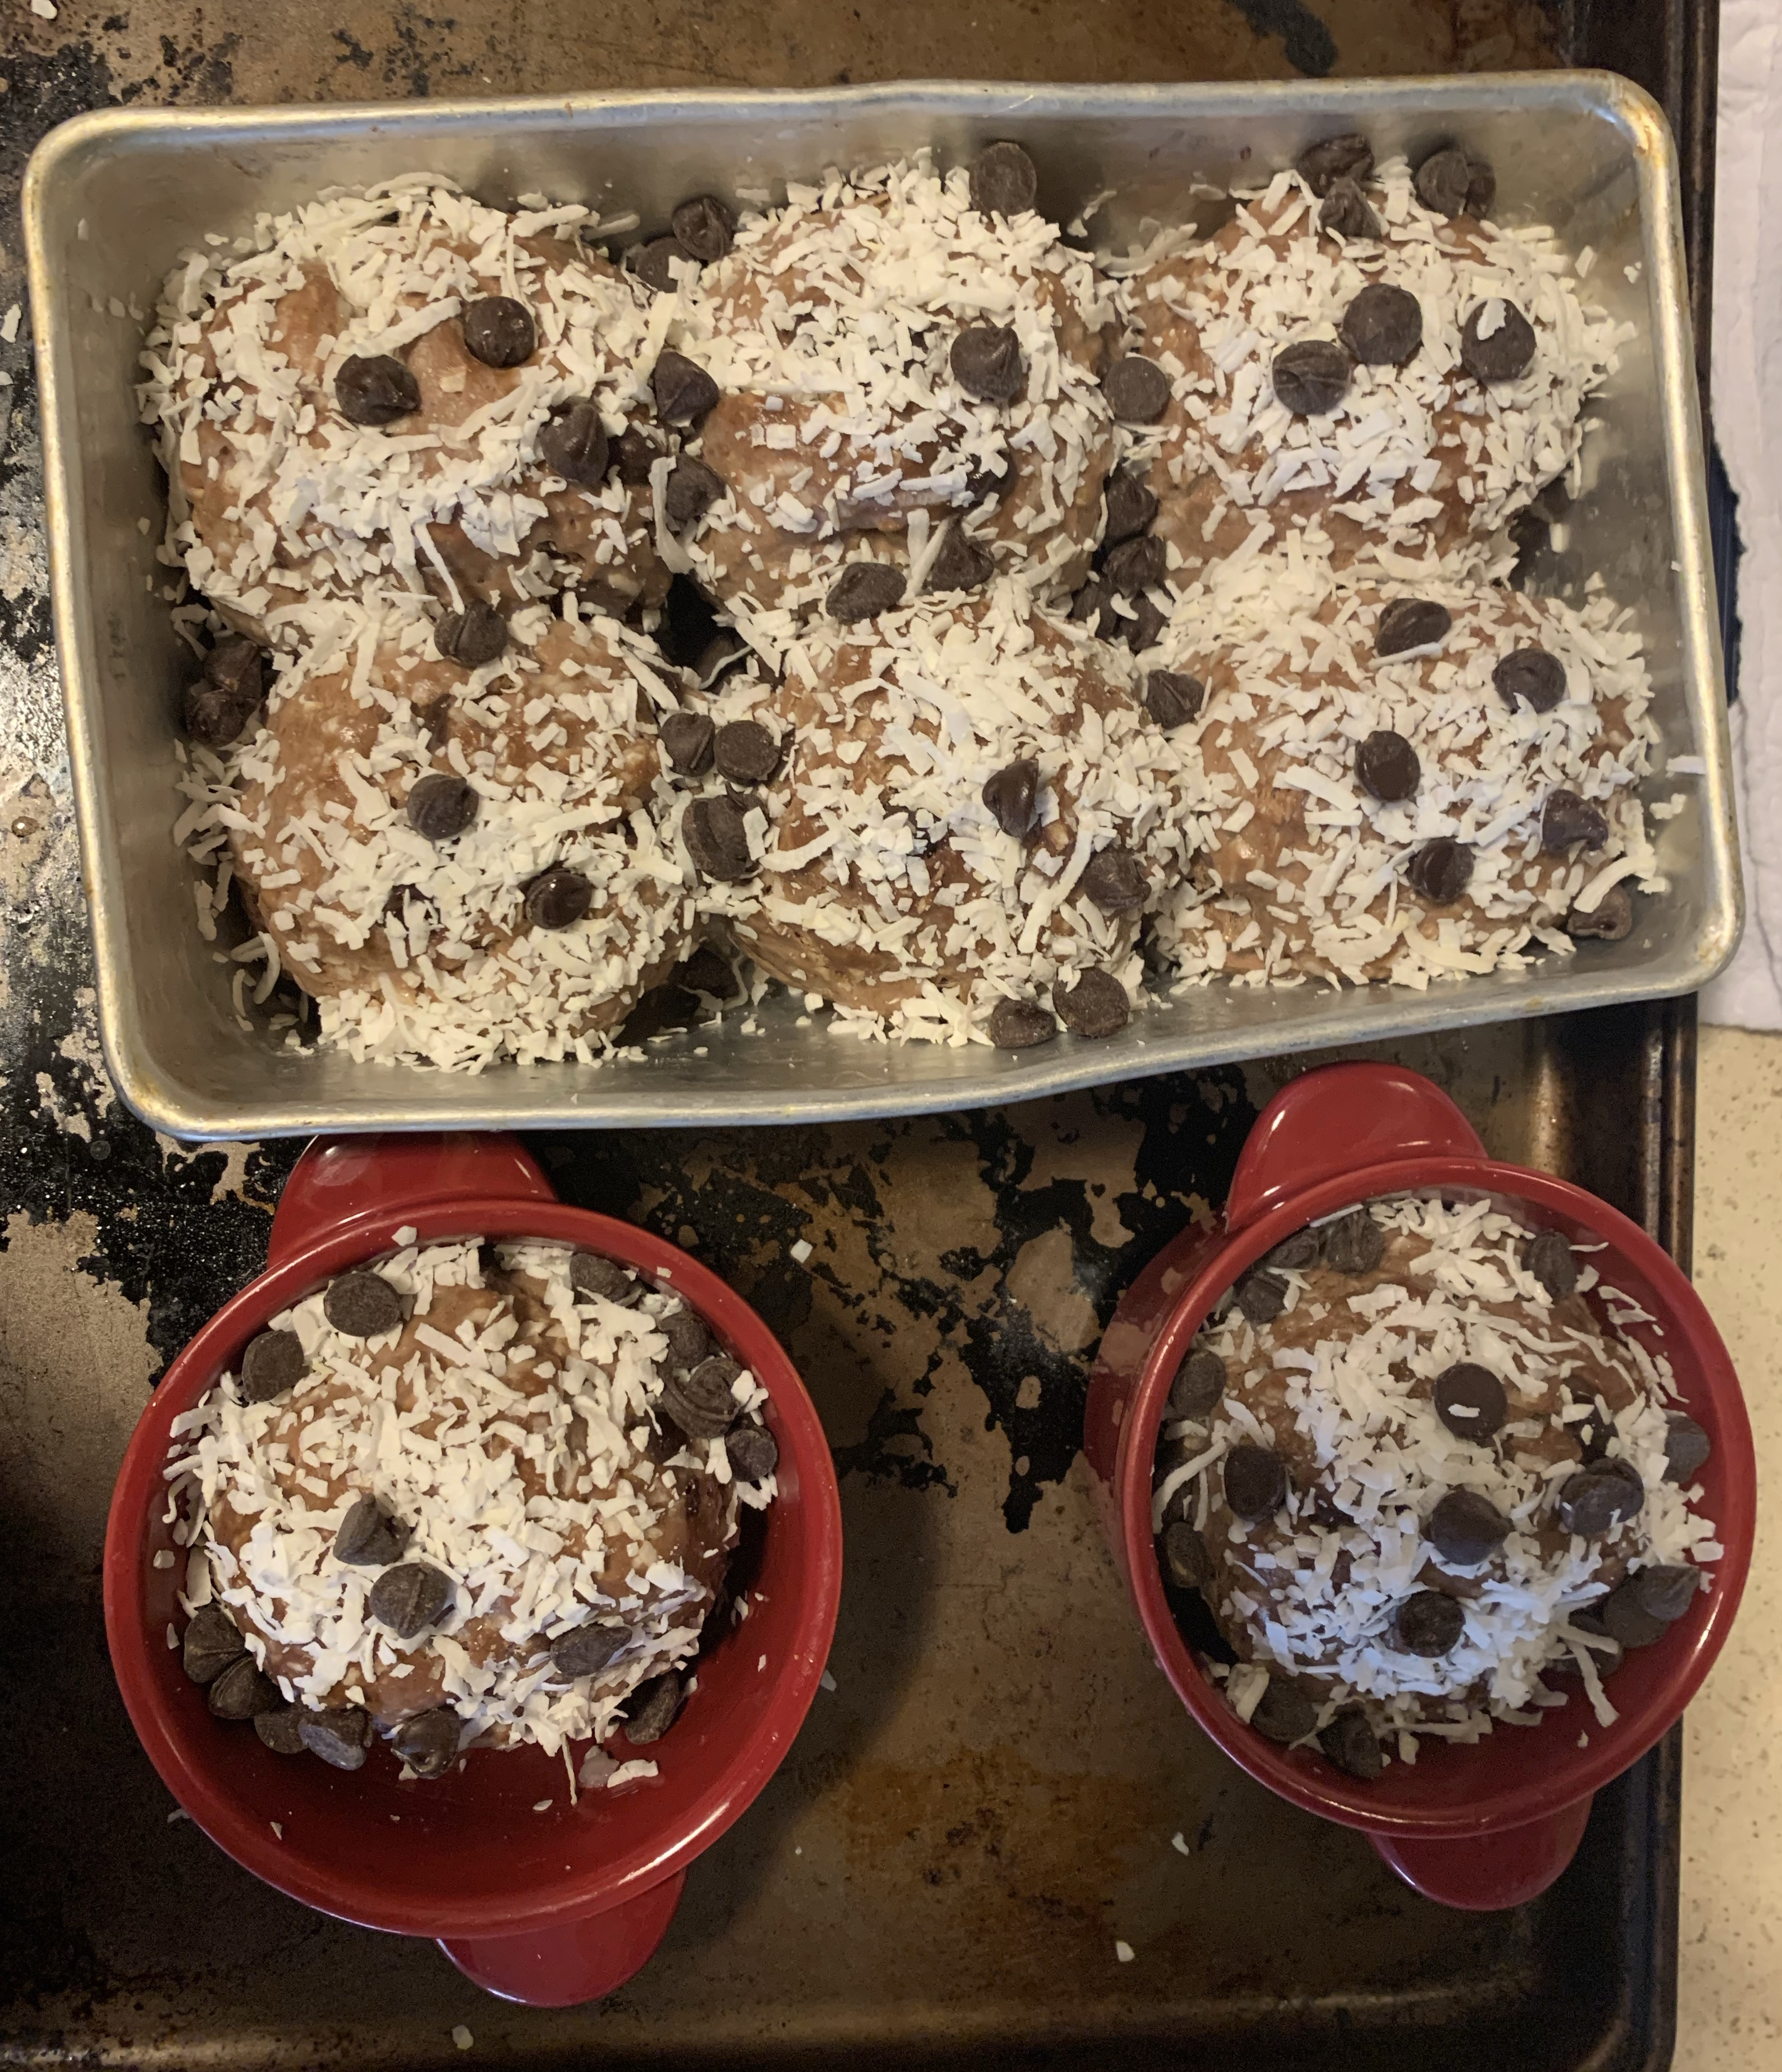 choco pan de coco covered in shredded coconut and chocolate chips, before baking